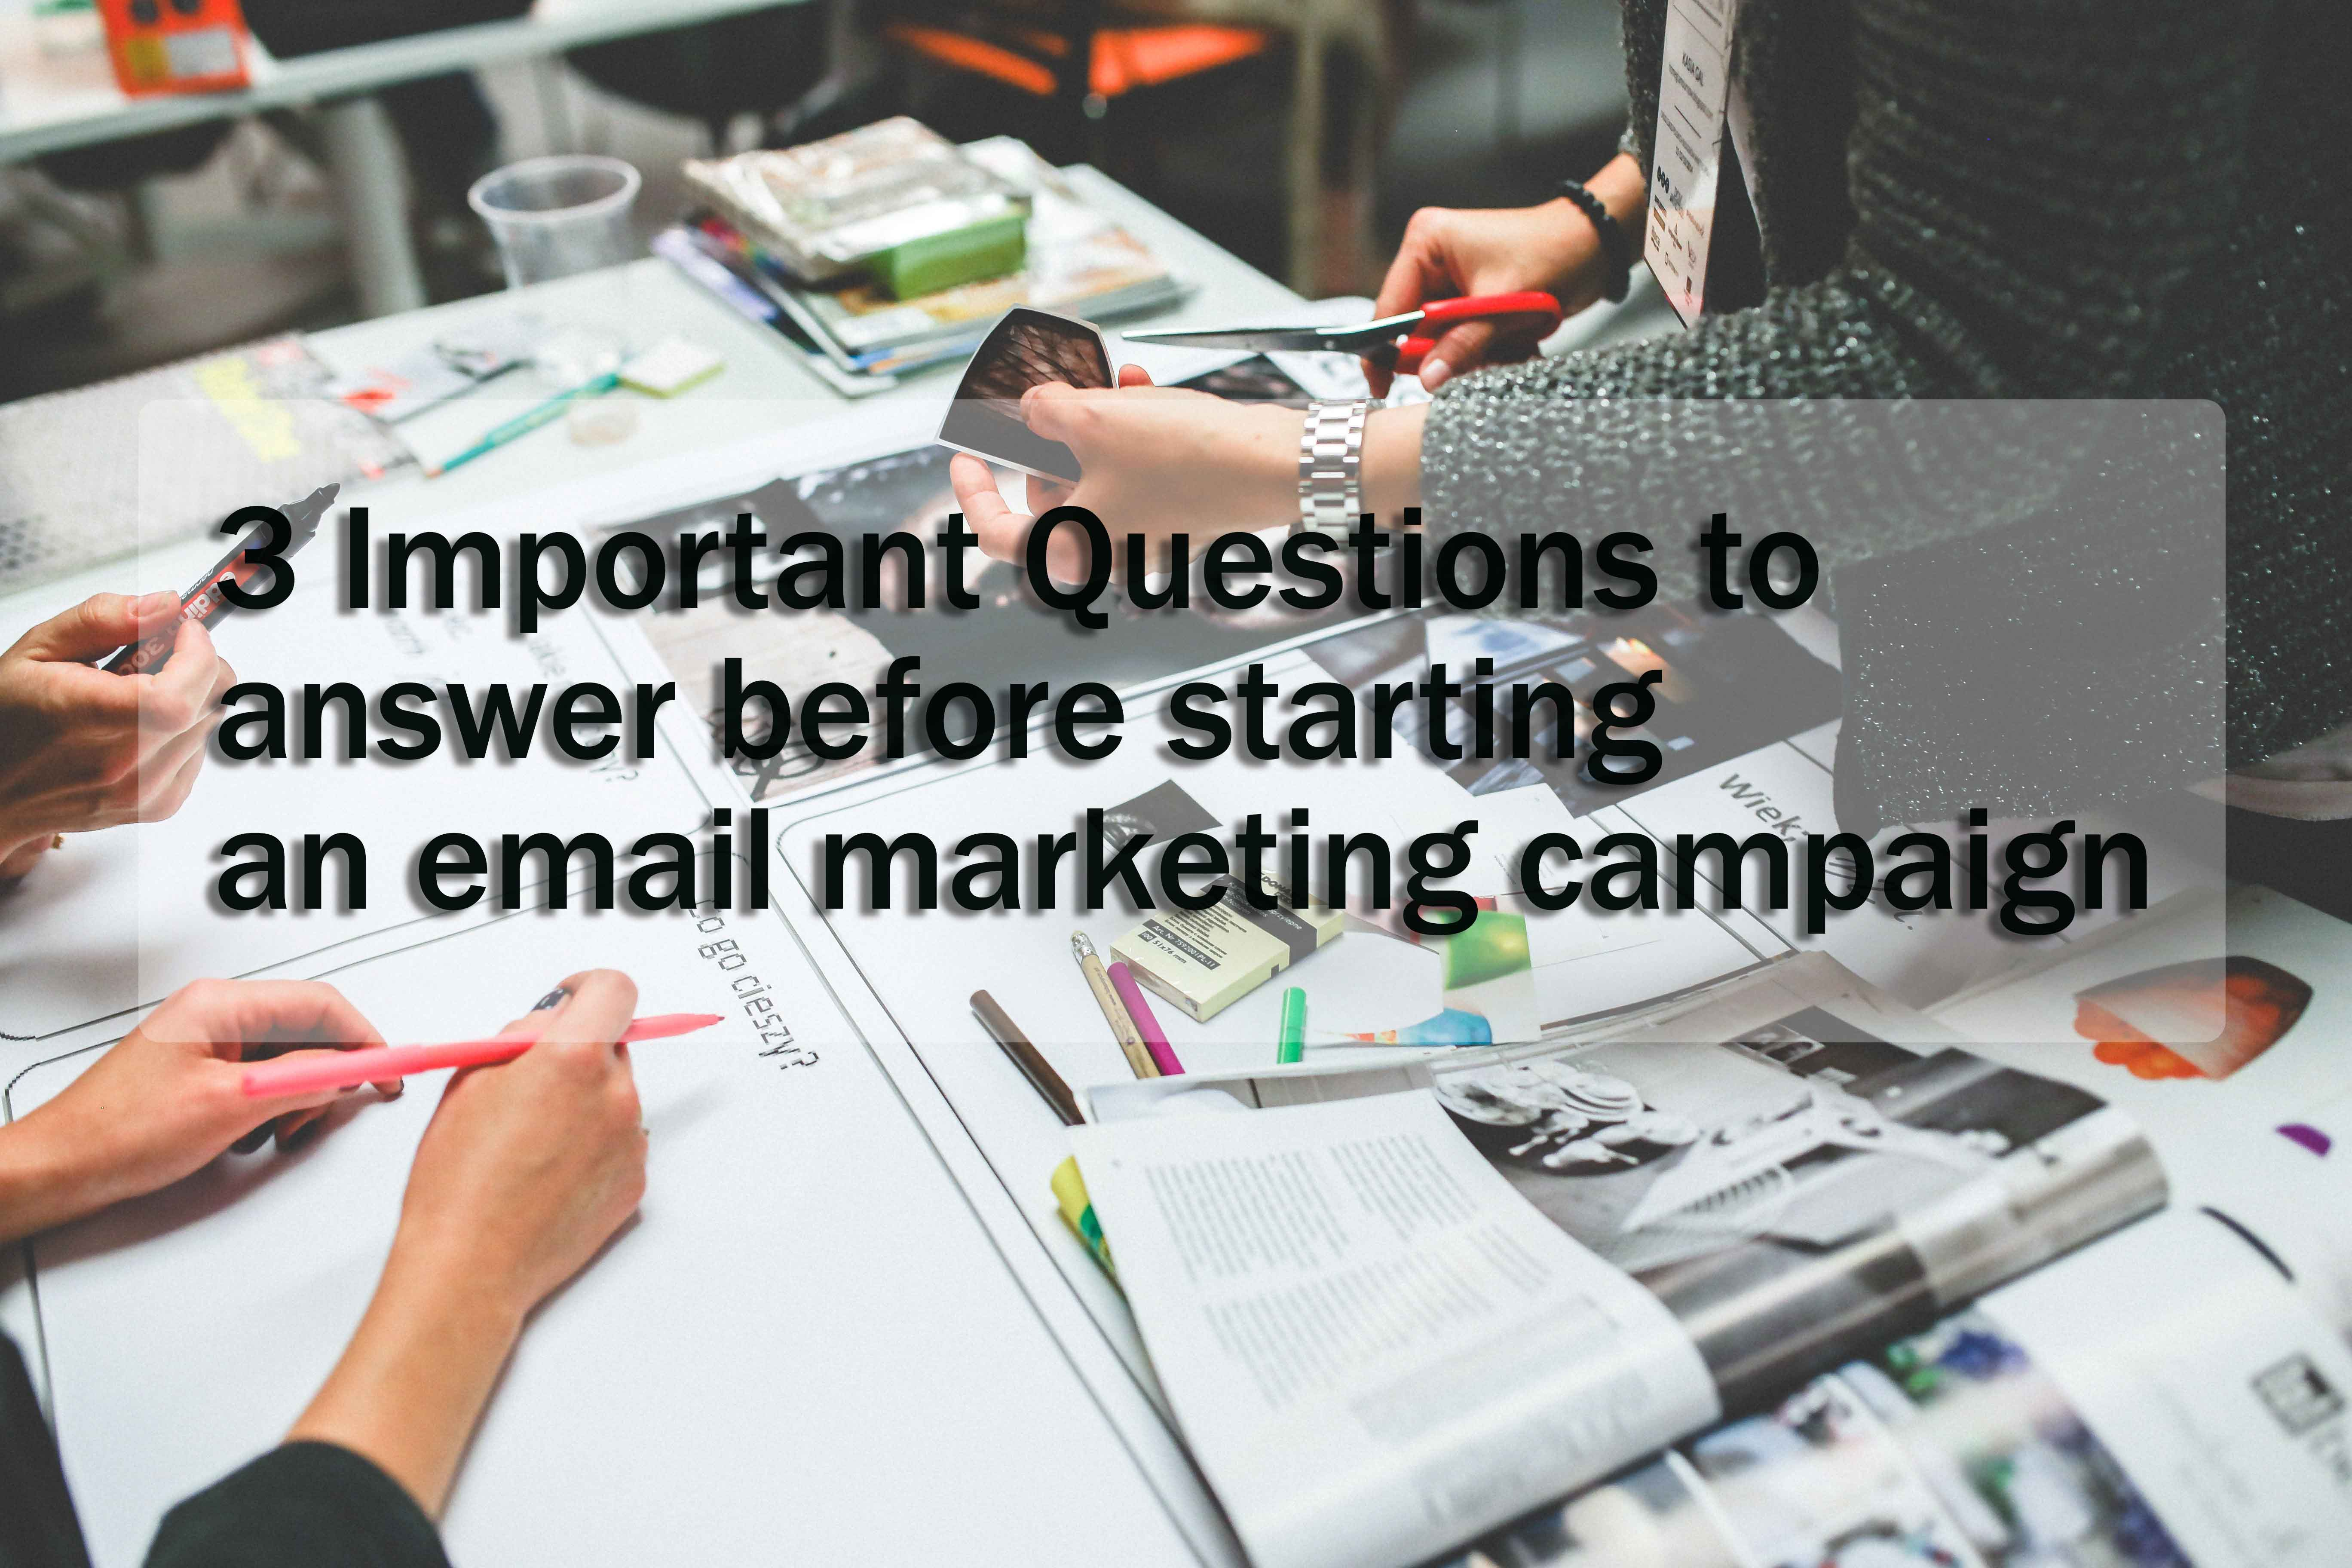 3 important questions to answer before starting an email marketing campaign